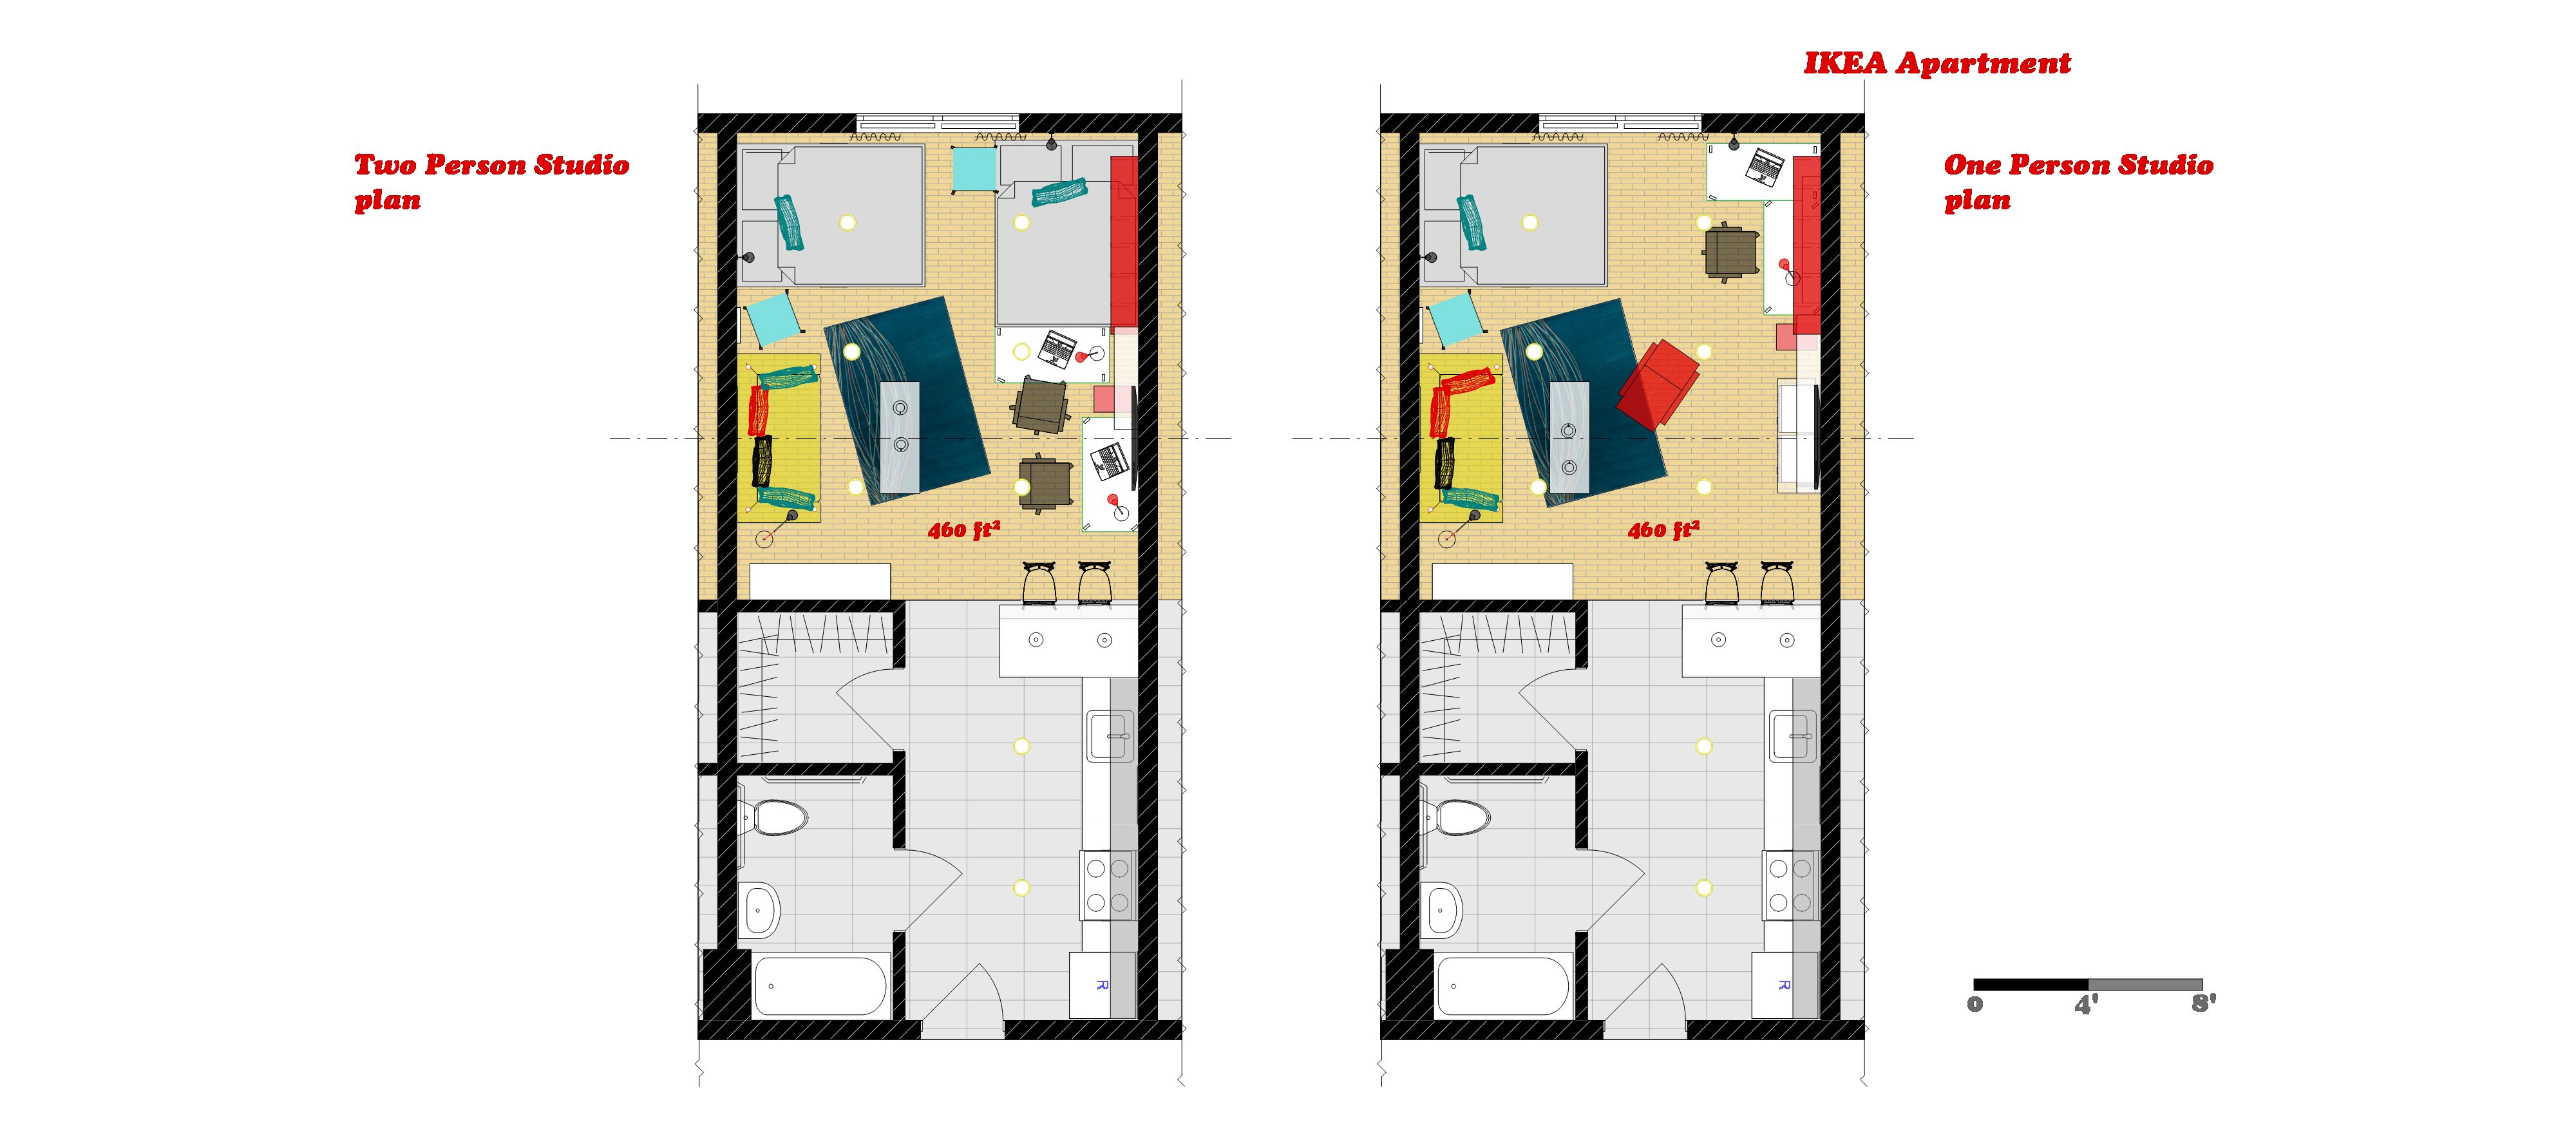 Apartment design ikea home design 2015 Ikea small house floor plans